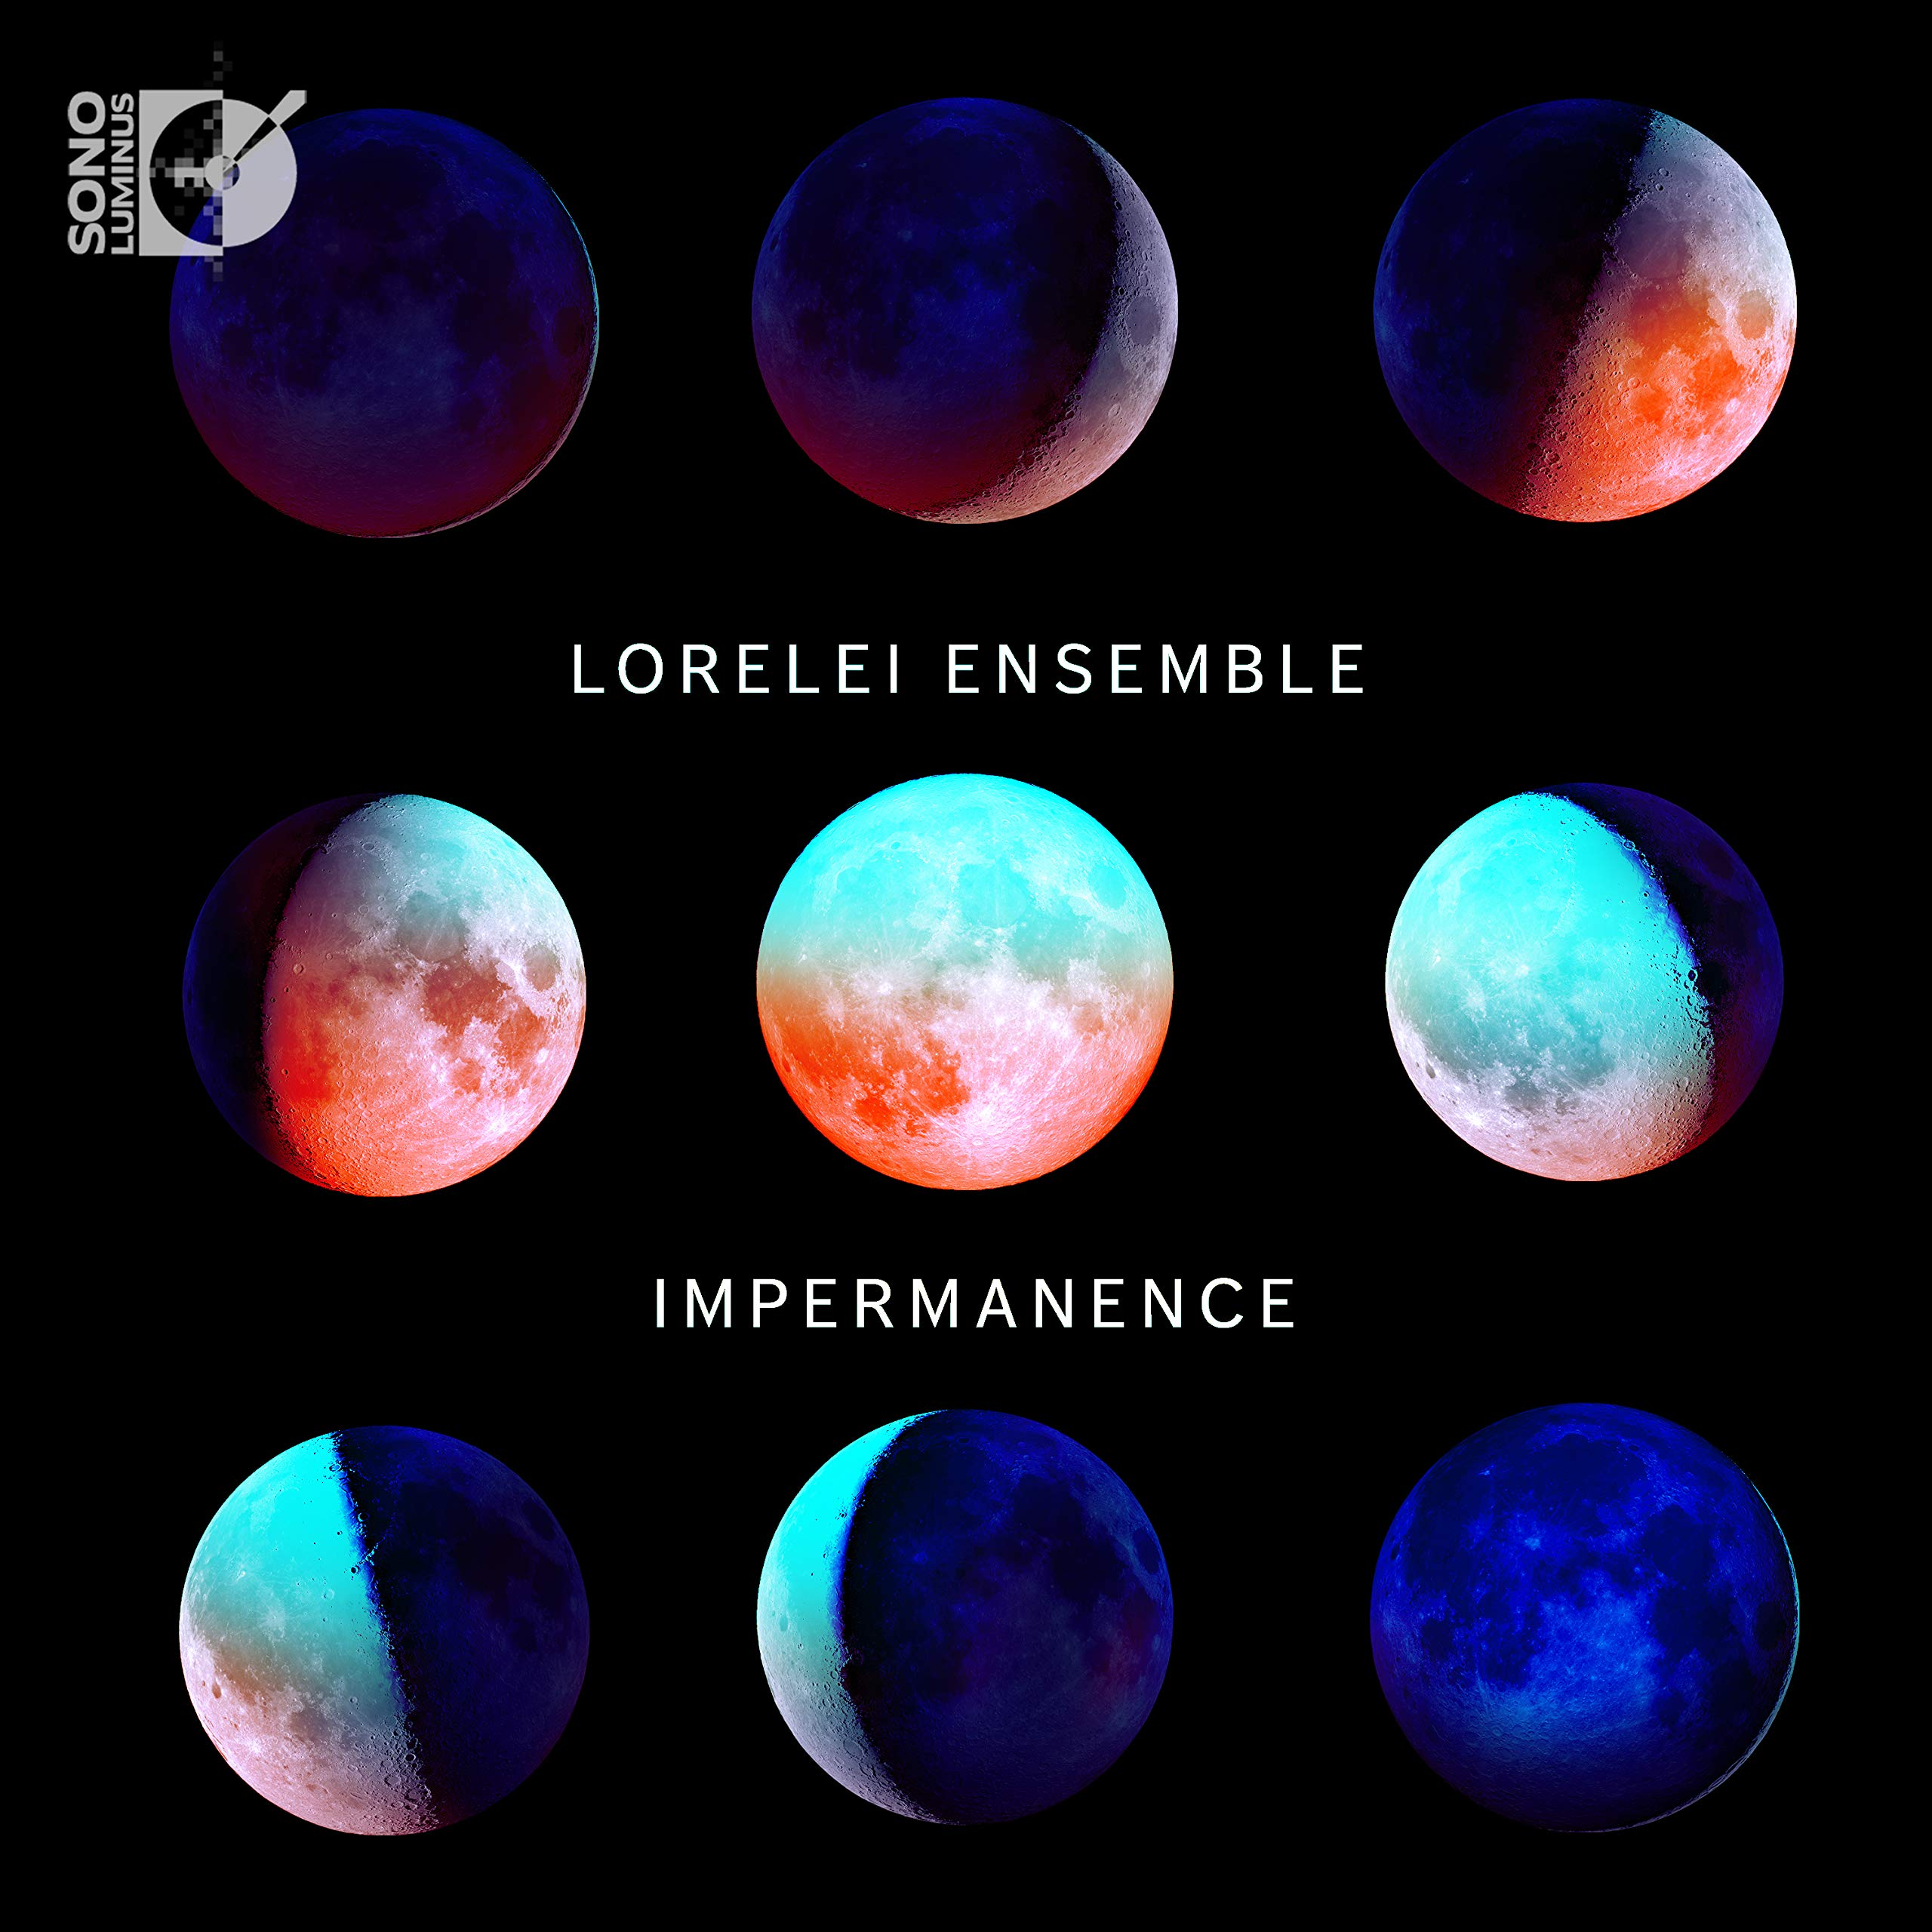 Lorelei Ensemble: Impermanence (Blu-ray Audio) by Sono Luminus